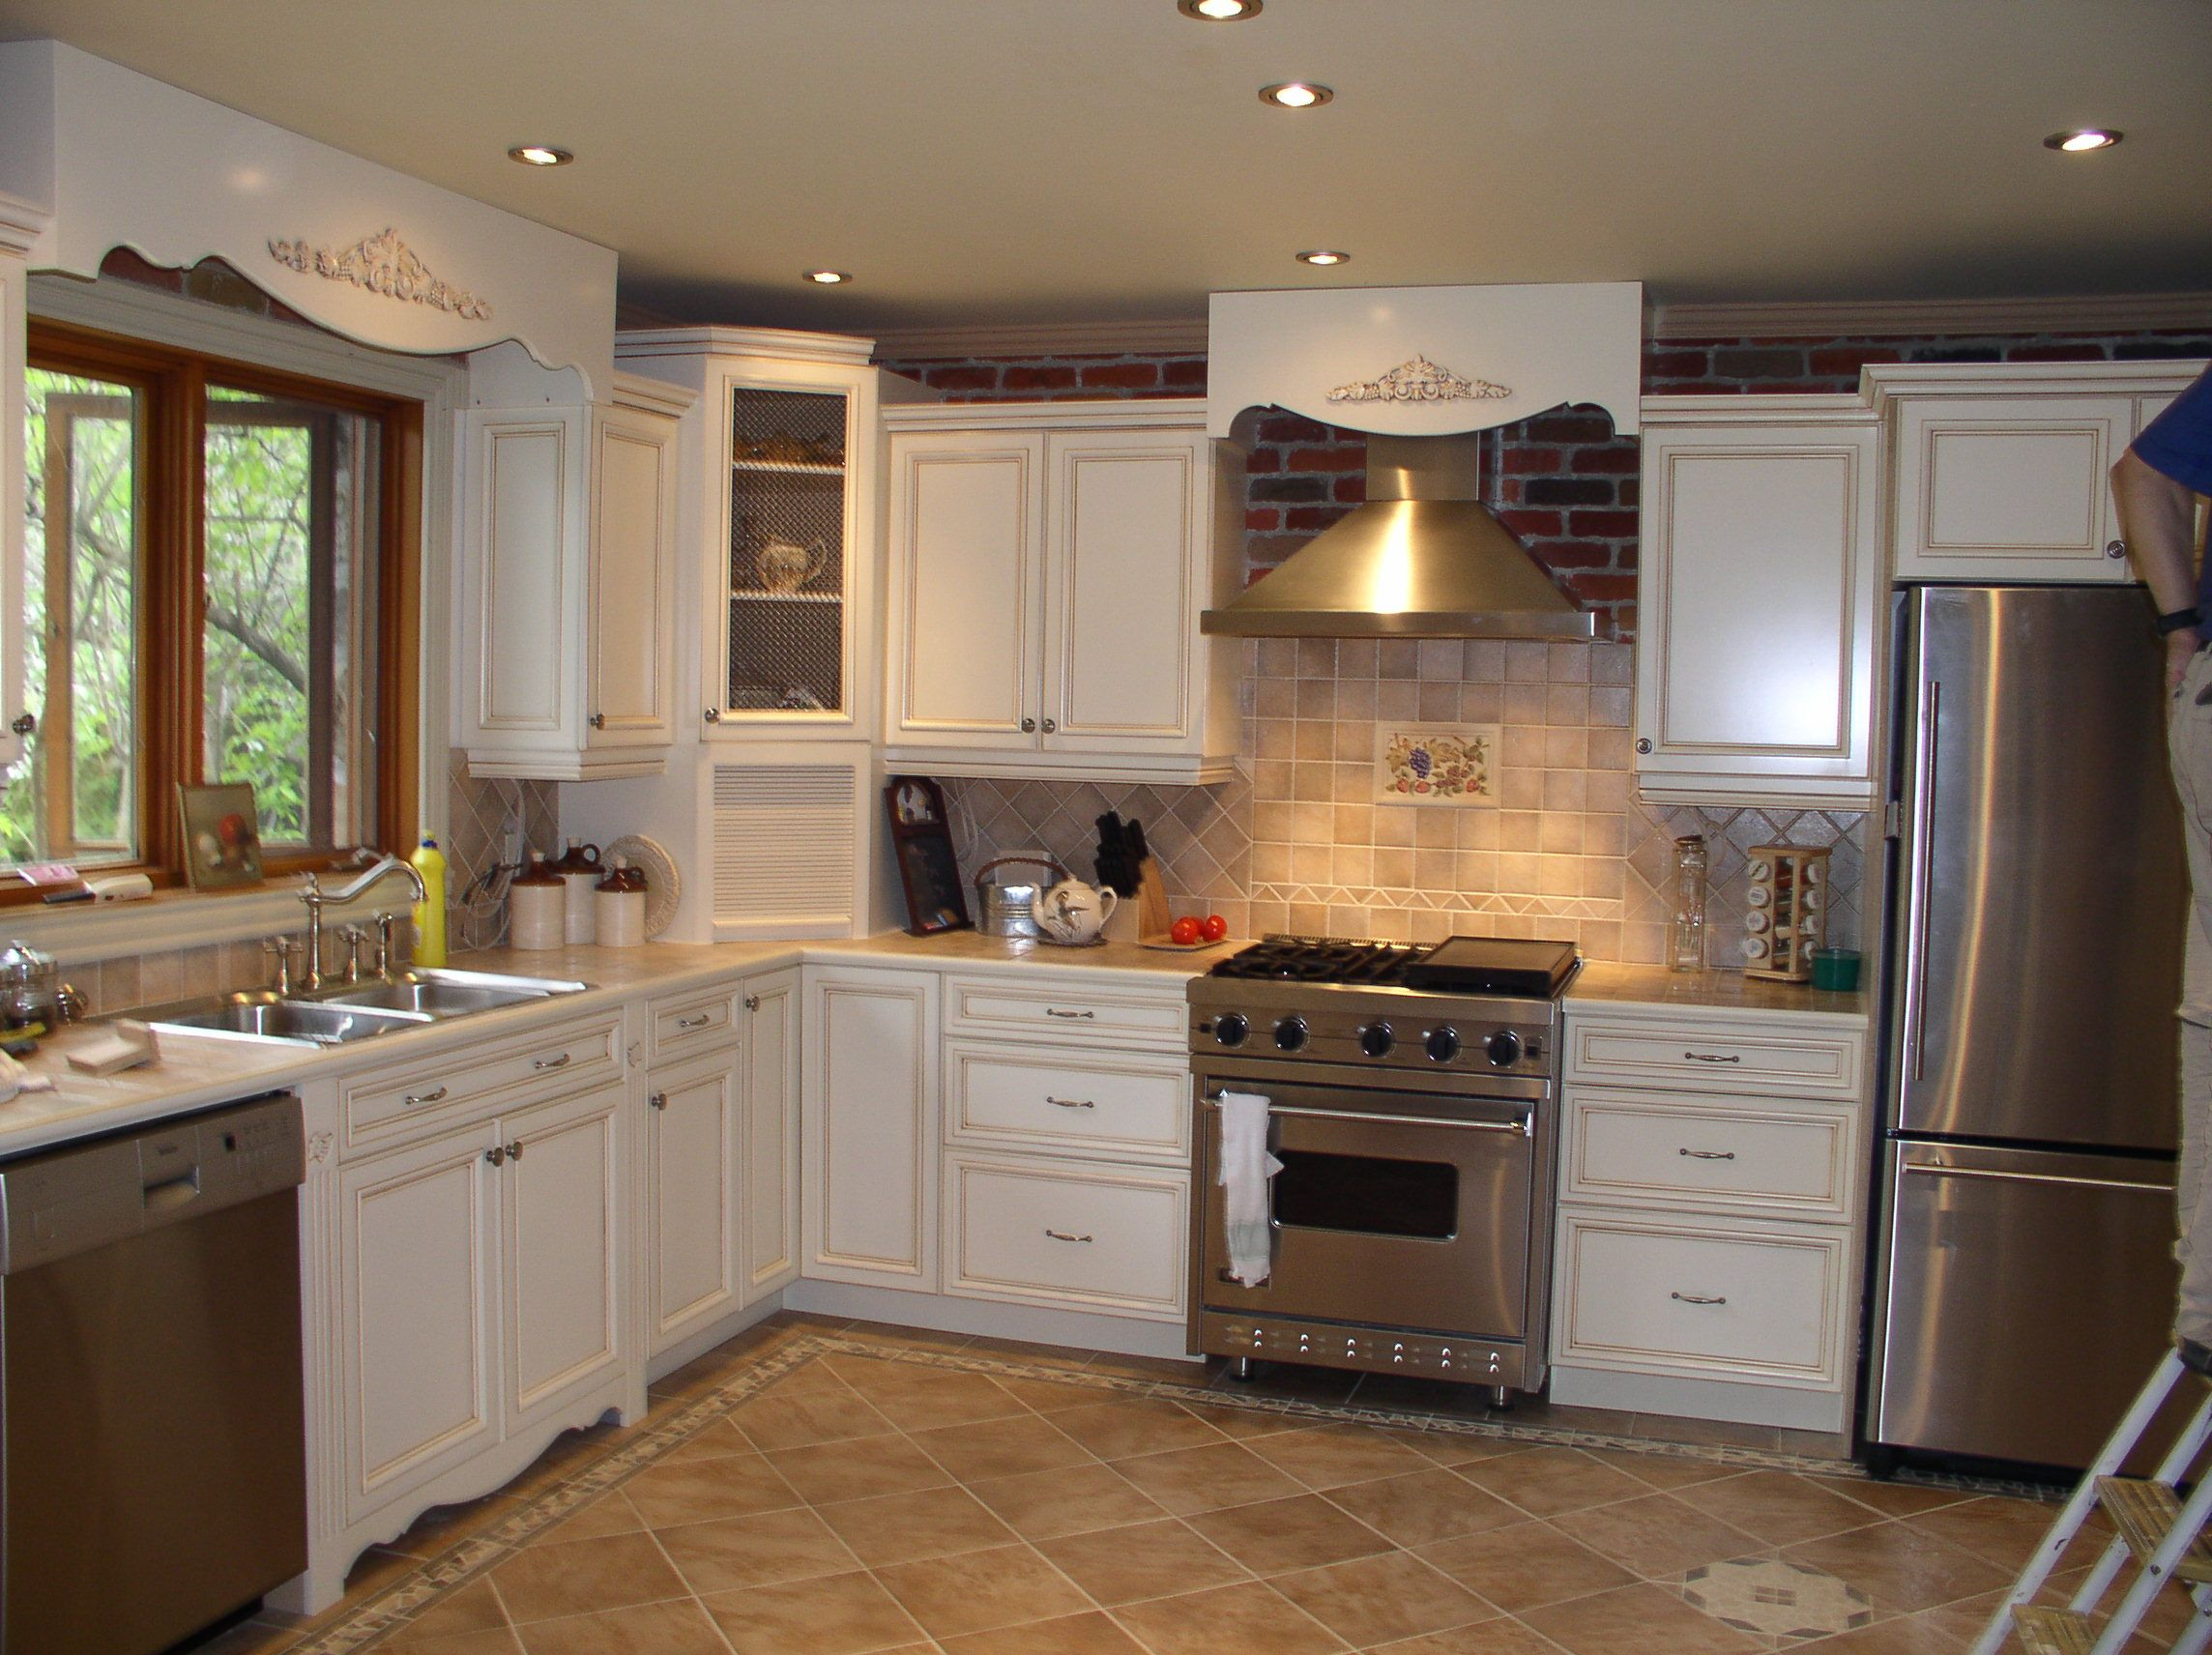 tile ideas remodel kitchen antique remodeling old subway